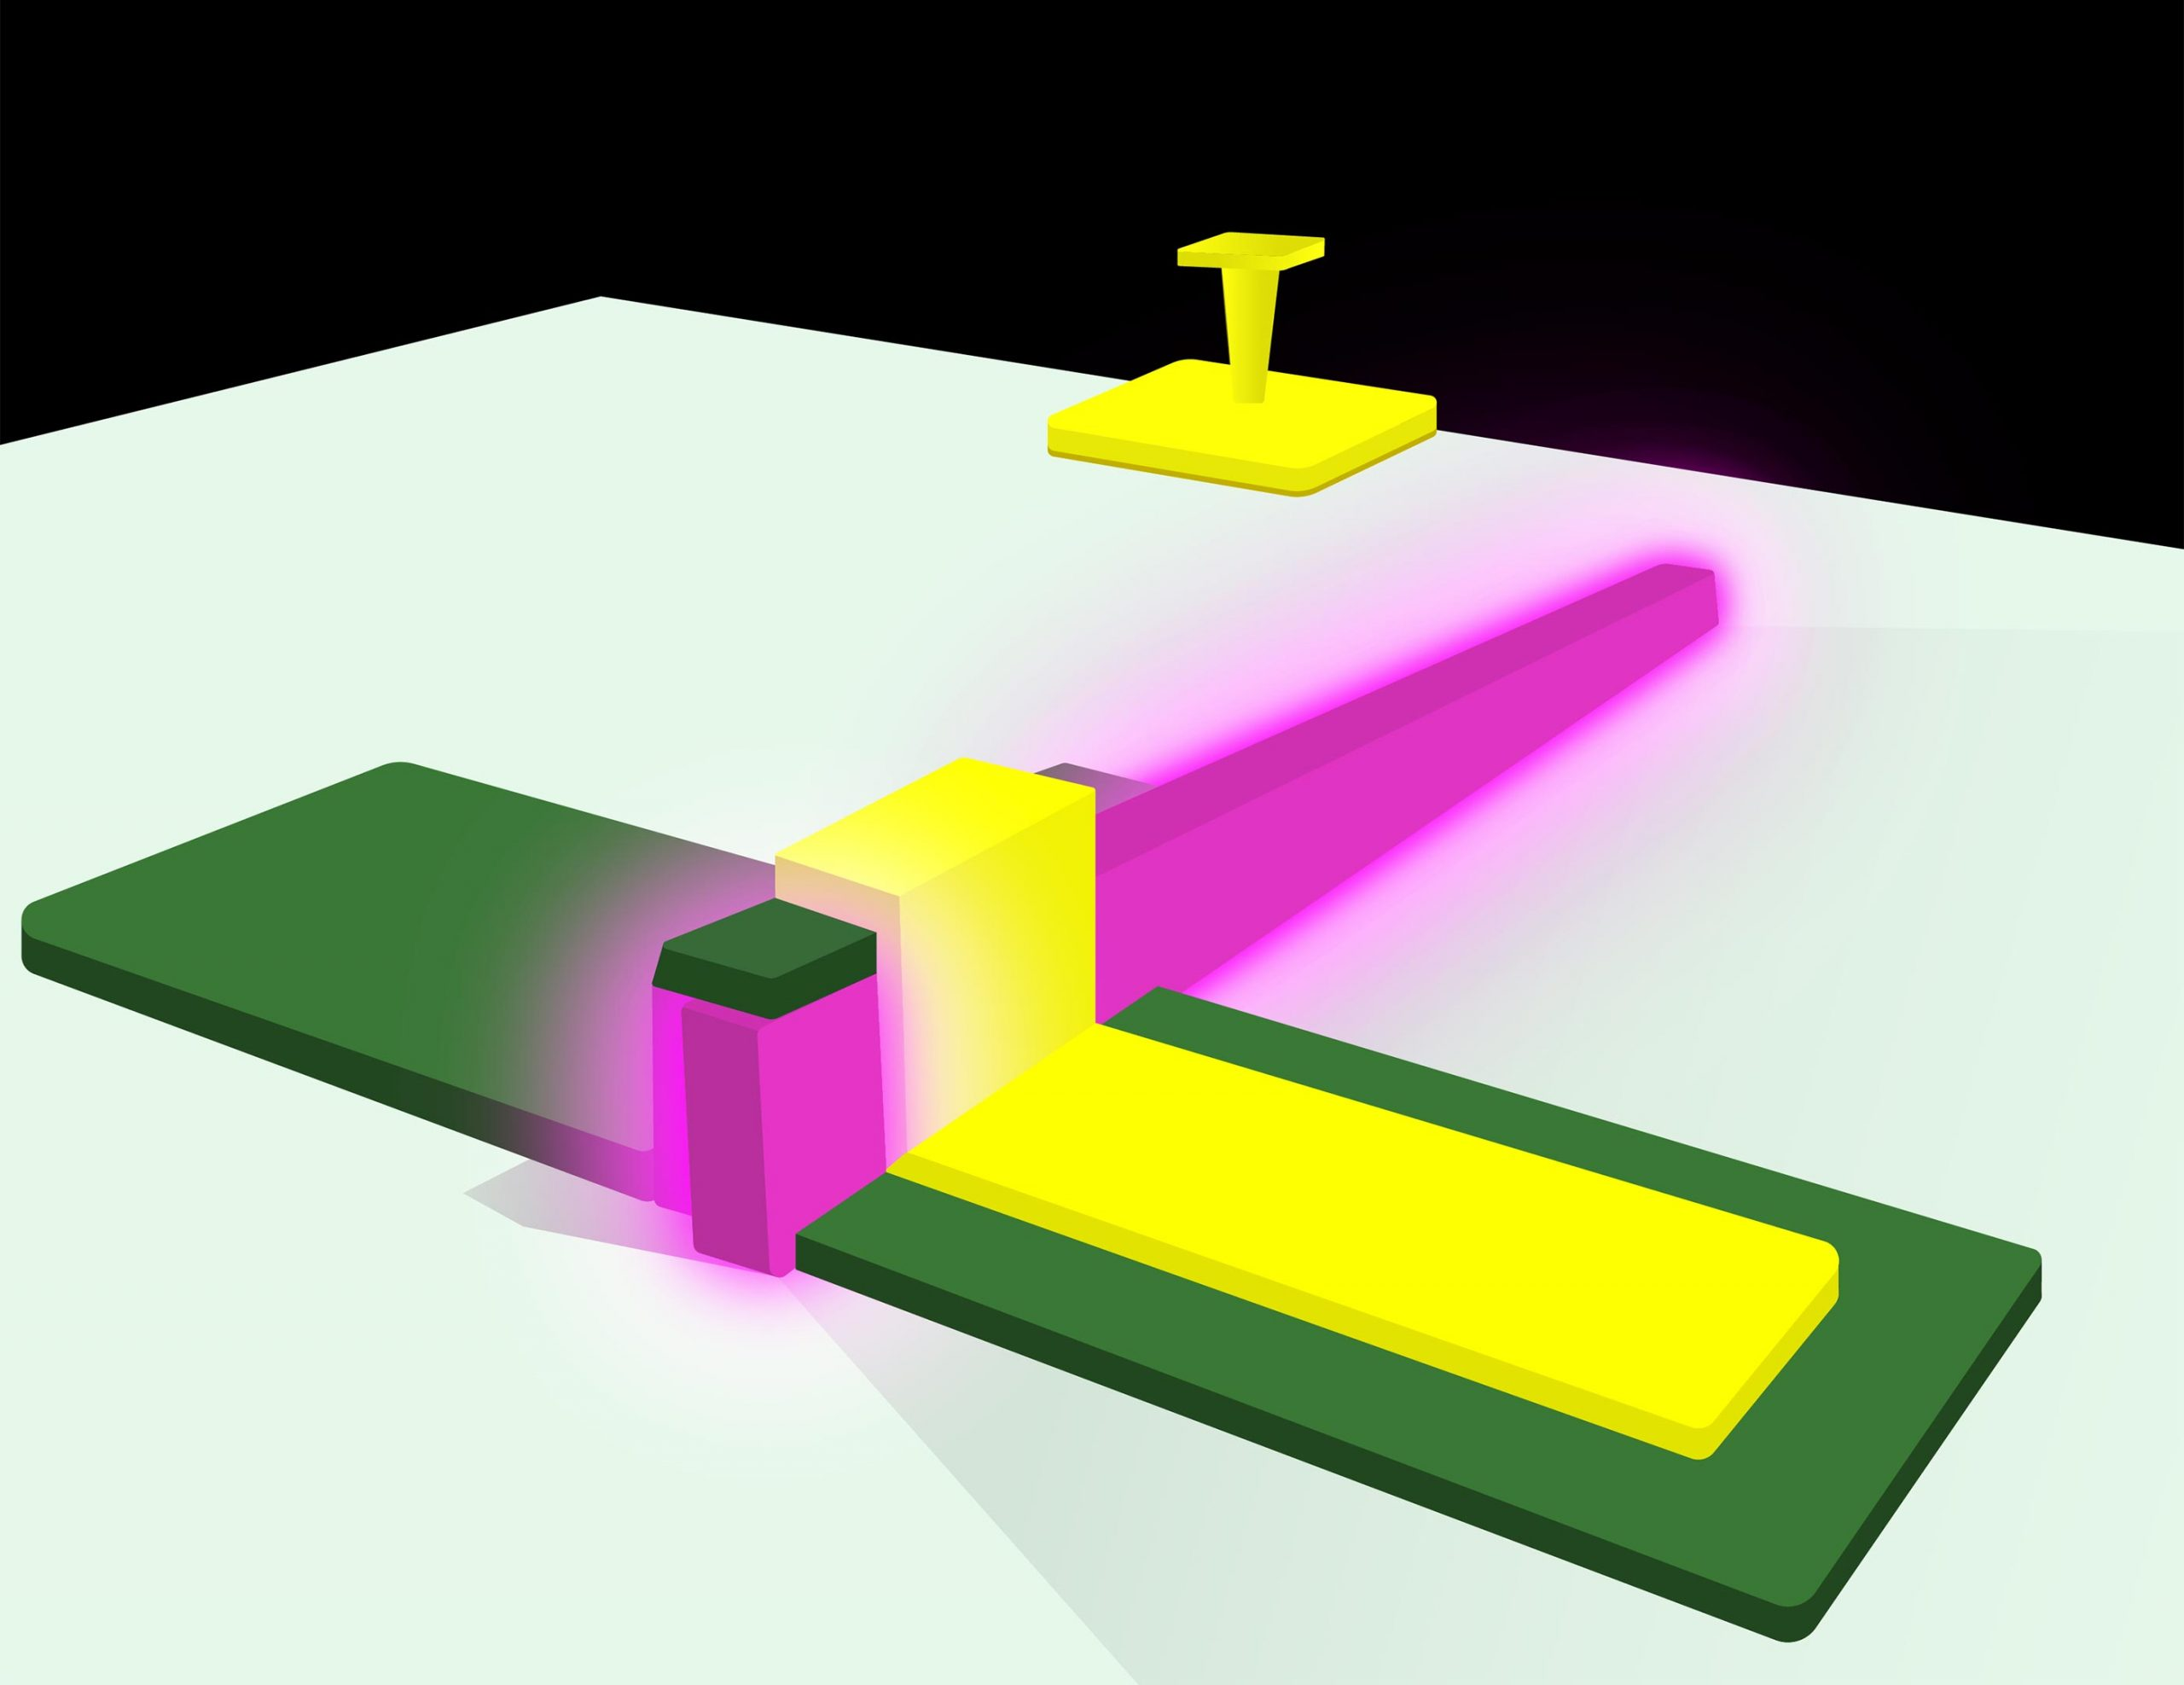 Scientists Build a Better Nanoscale LED – A Tiny, Bright Light That Can Transform Into a Laser - SciTechDaily